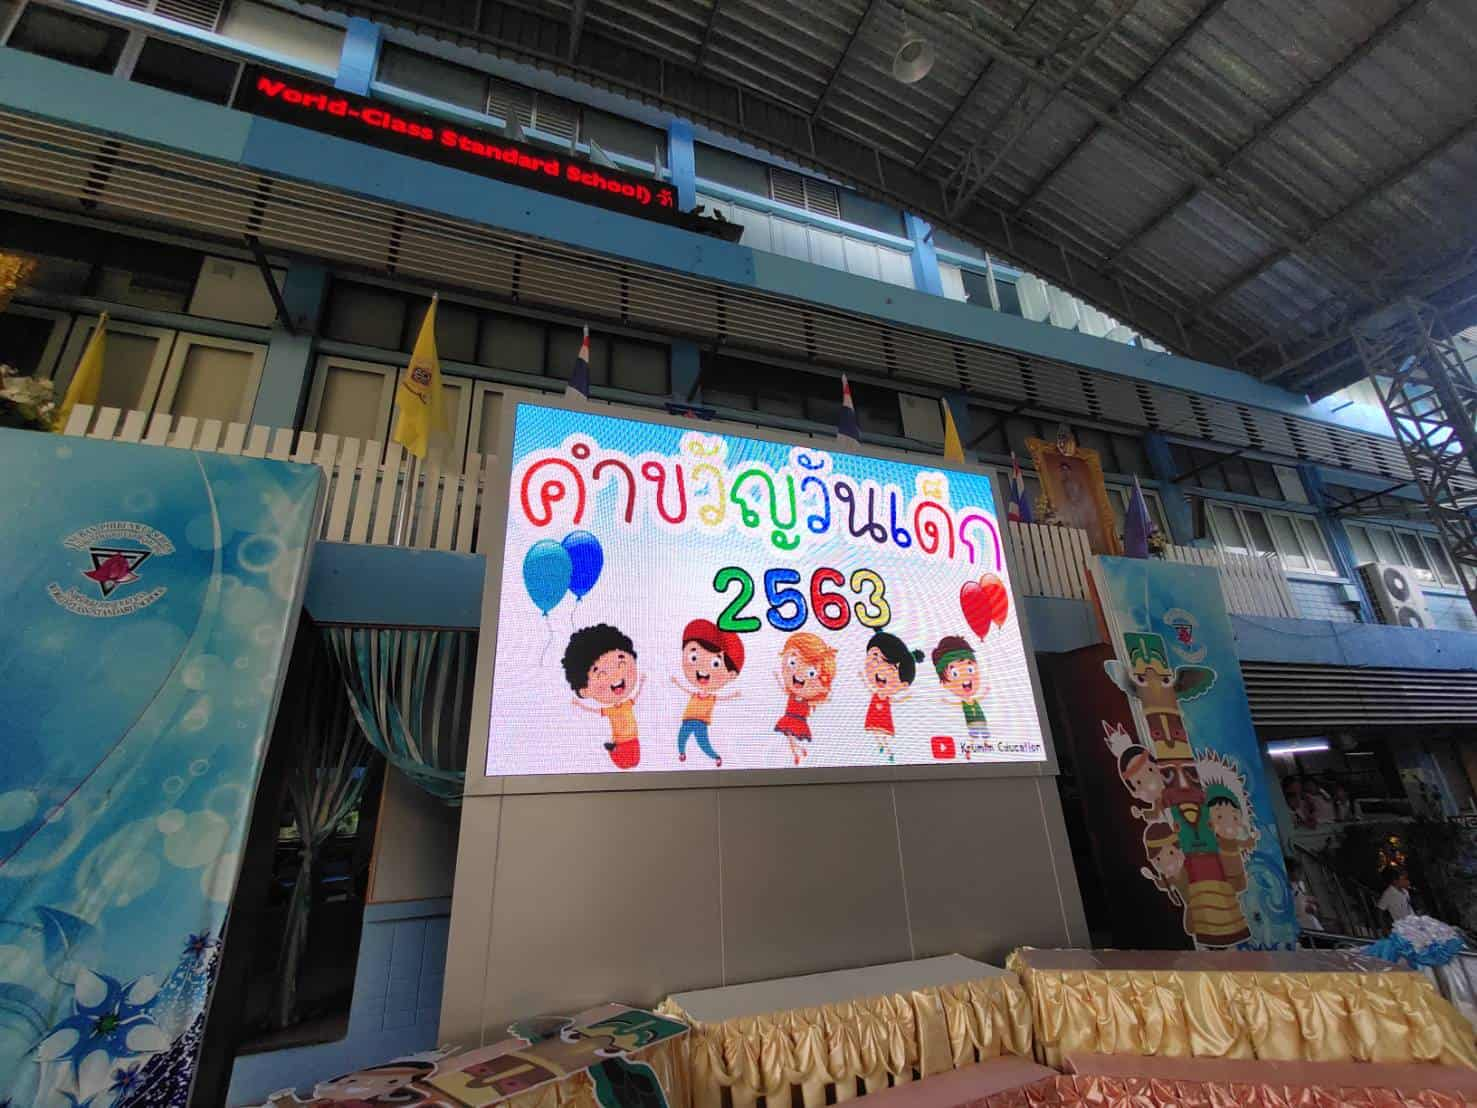 BUY A LASTING LED ADVERTISING SCREEN